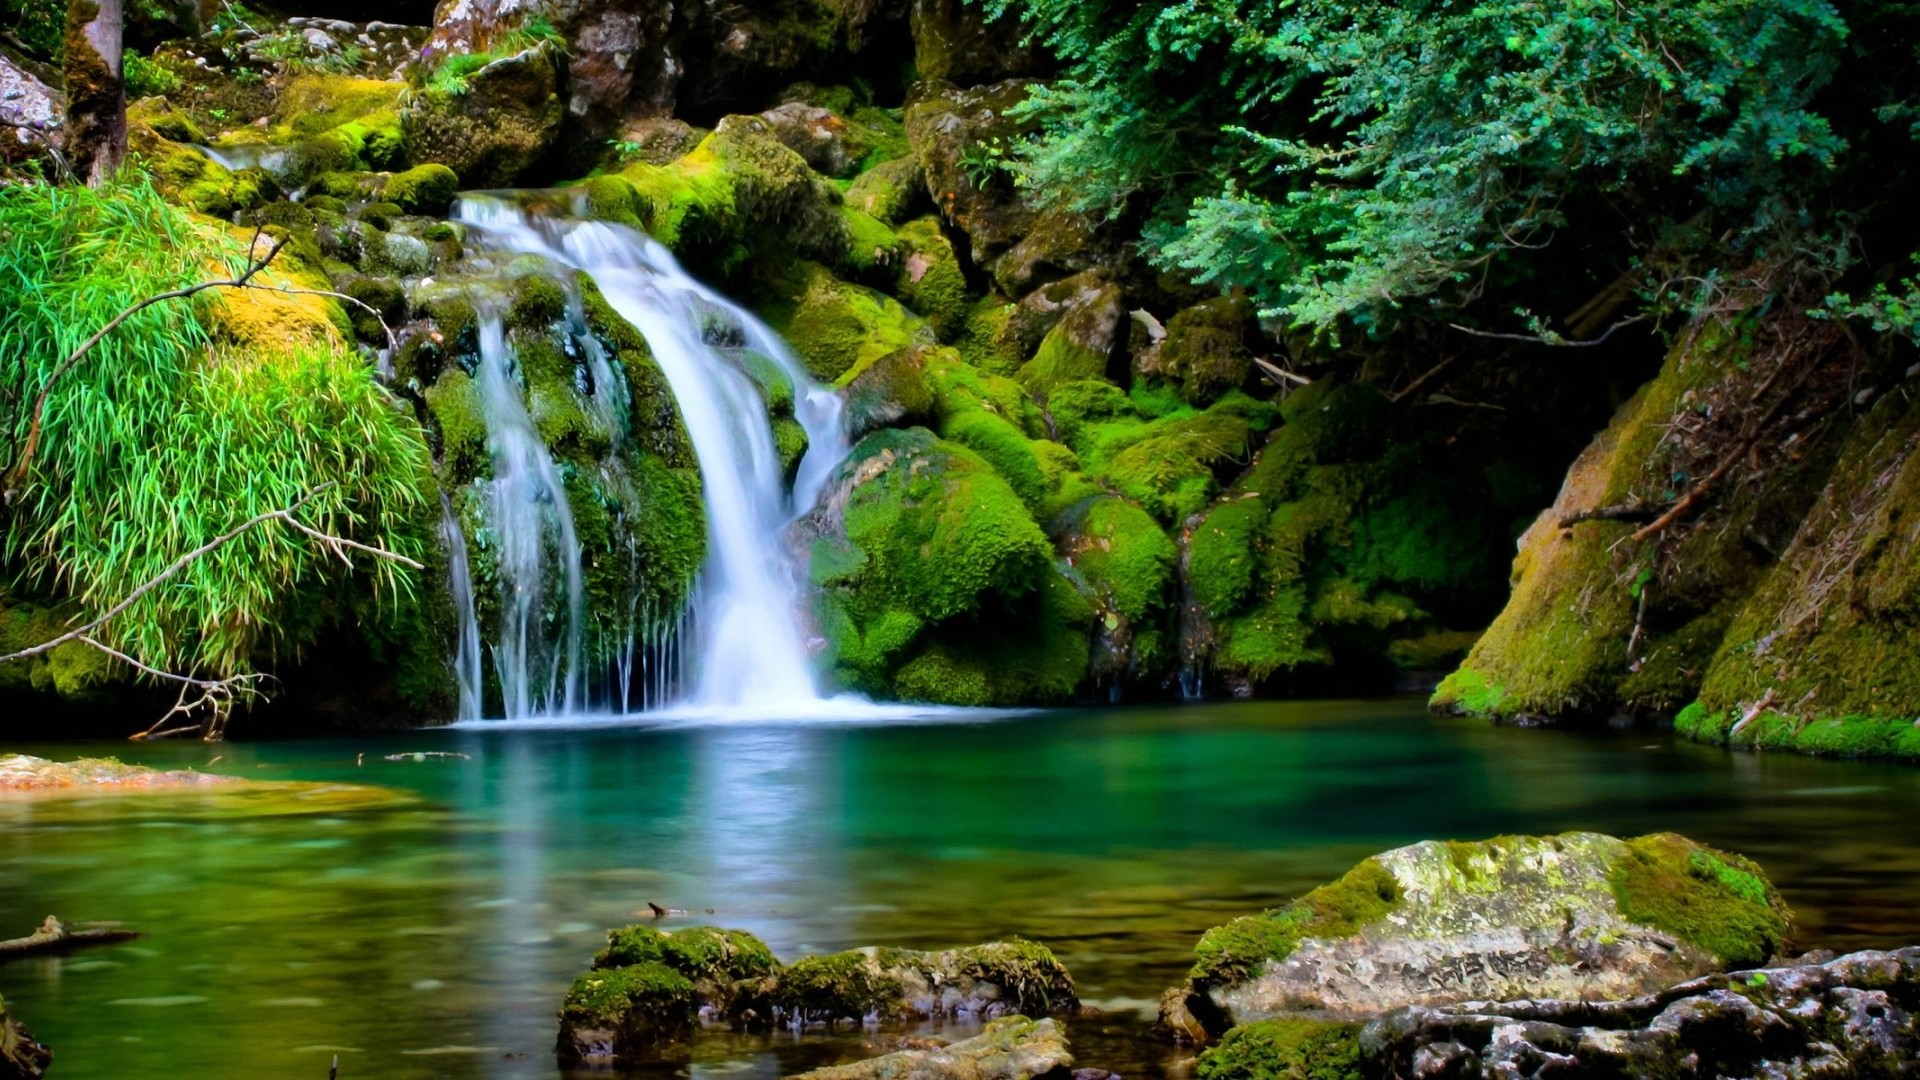 85 Hd Nature Wallpapers Download Free Wallpapers For Desktop